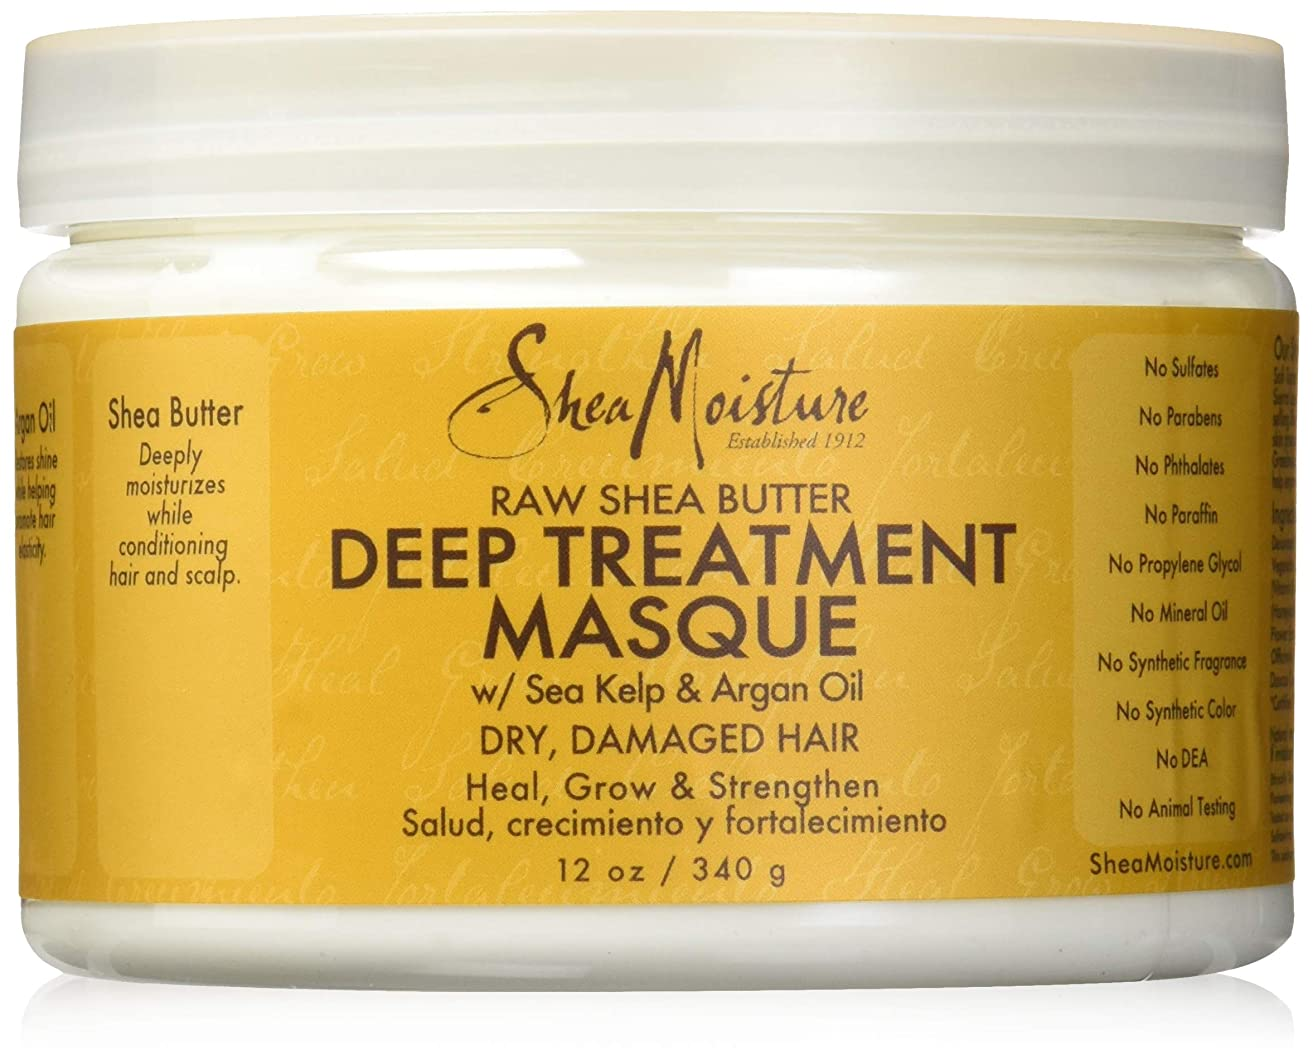 一寄稿者事Shea Moisture Raw Shea Butter Deep Treatment Masque 12oz